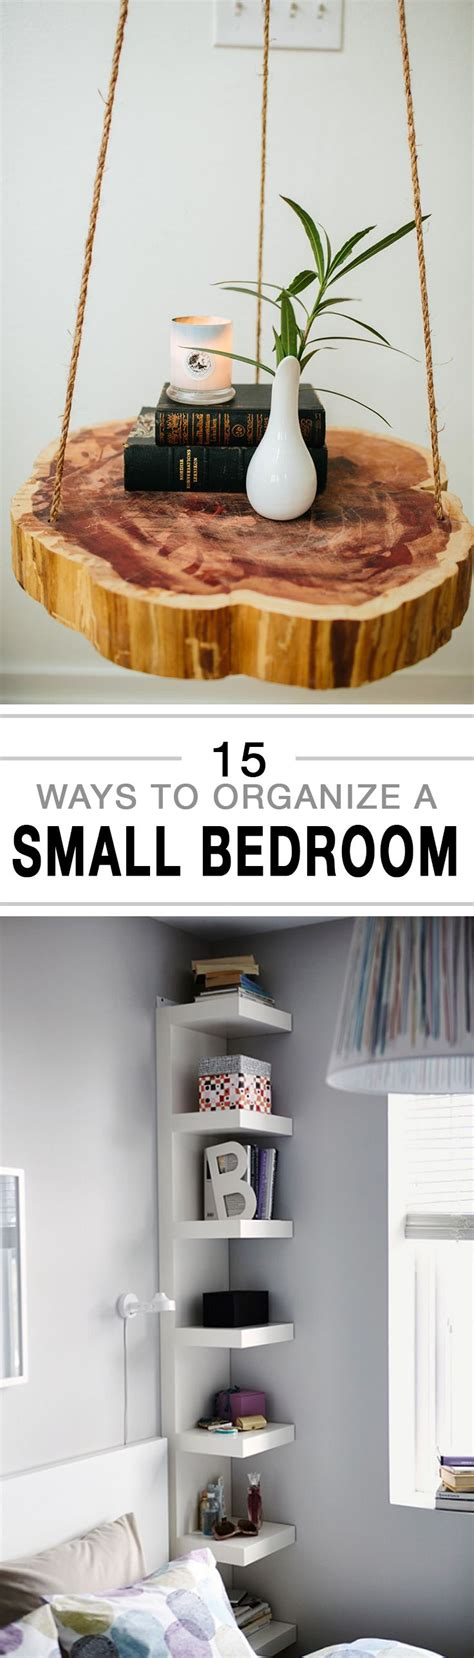 organization ideas for small bedrooms changing closet organization ideas for your hallway